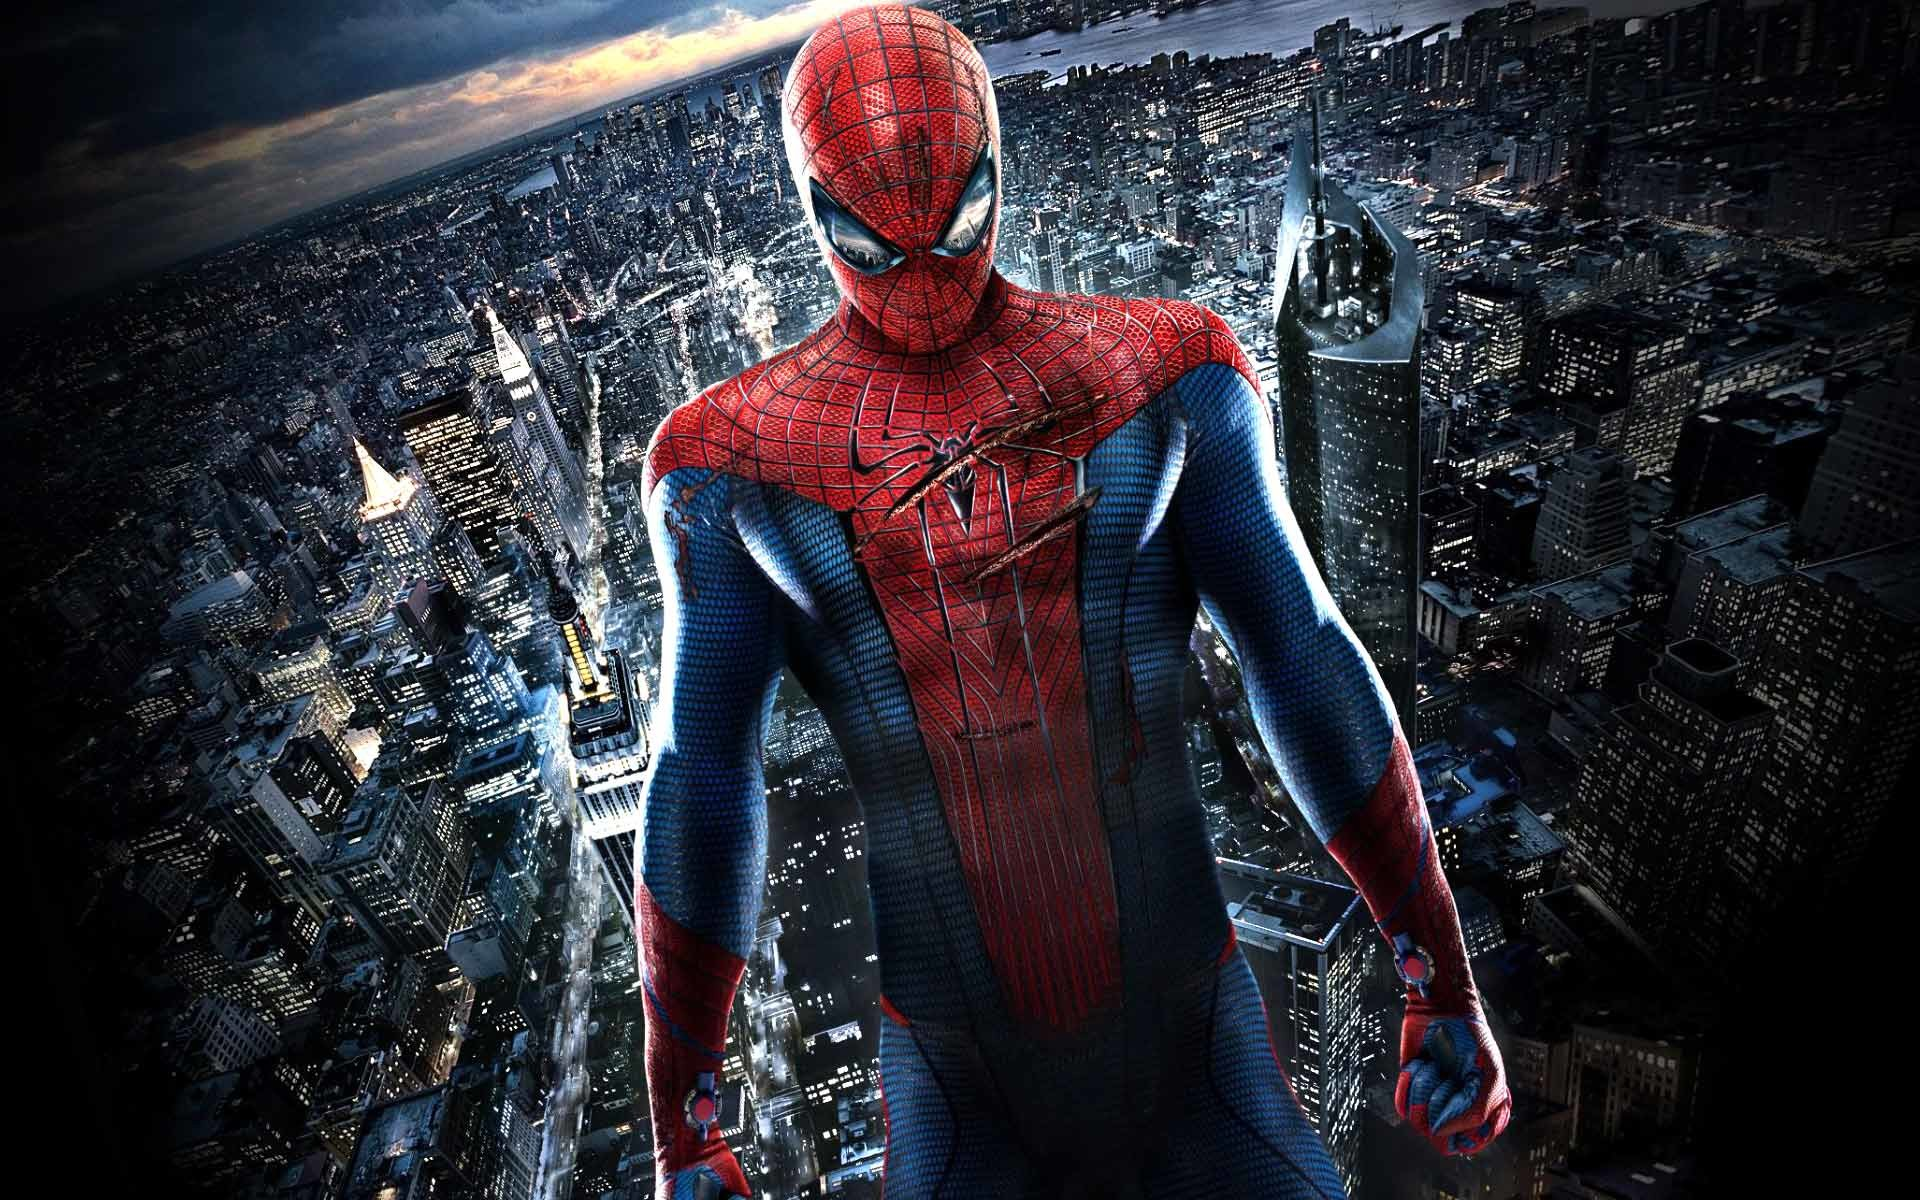 1920x1200 The Amazing Spider Man 2 HD Wallpapers & Desktop Backgrounds | The .